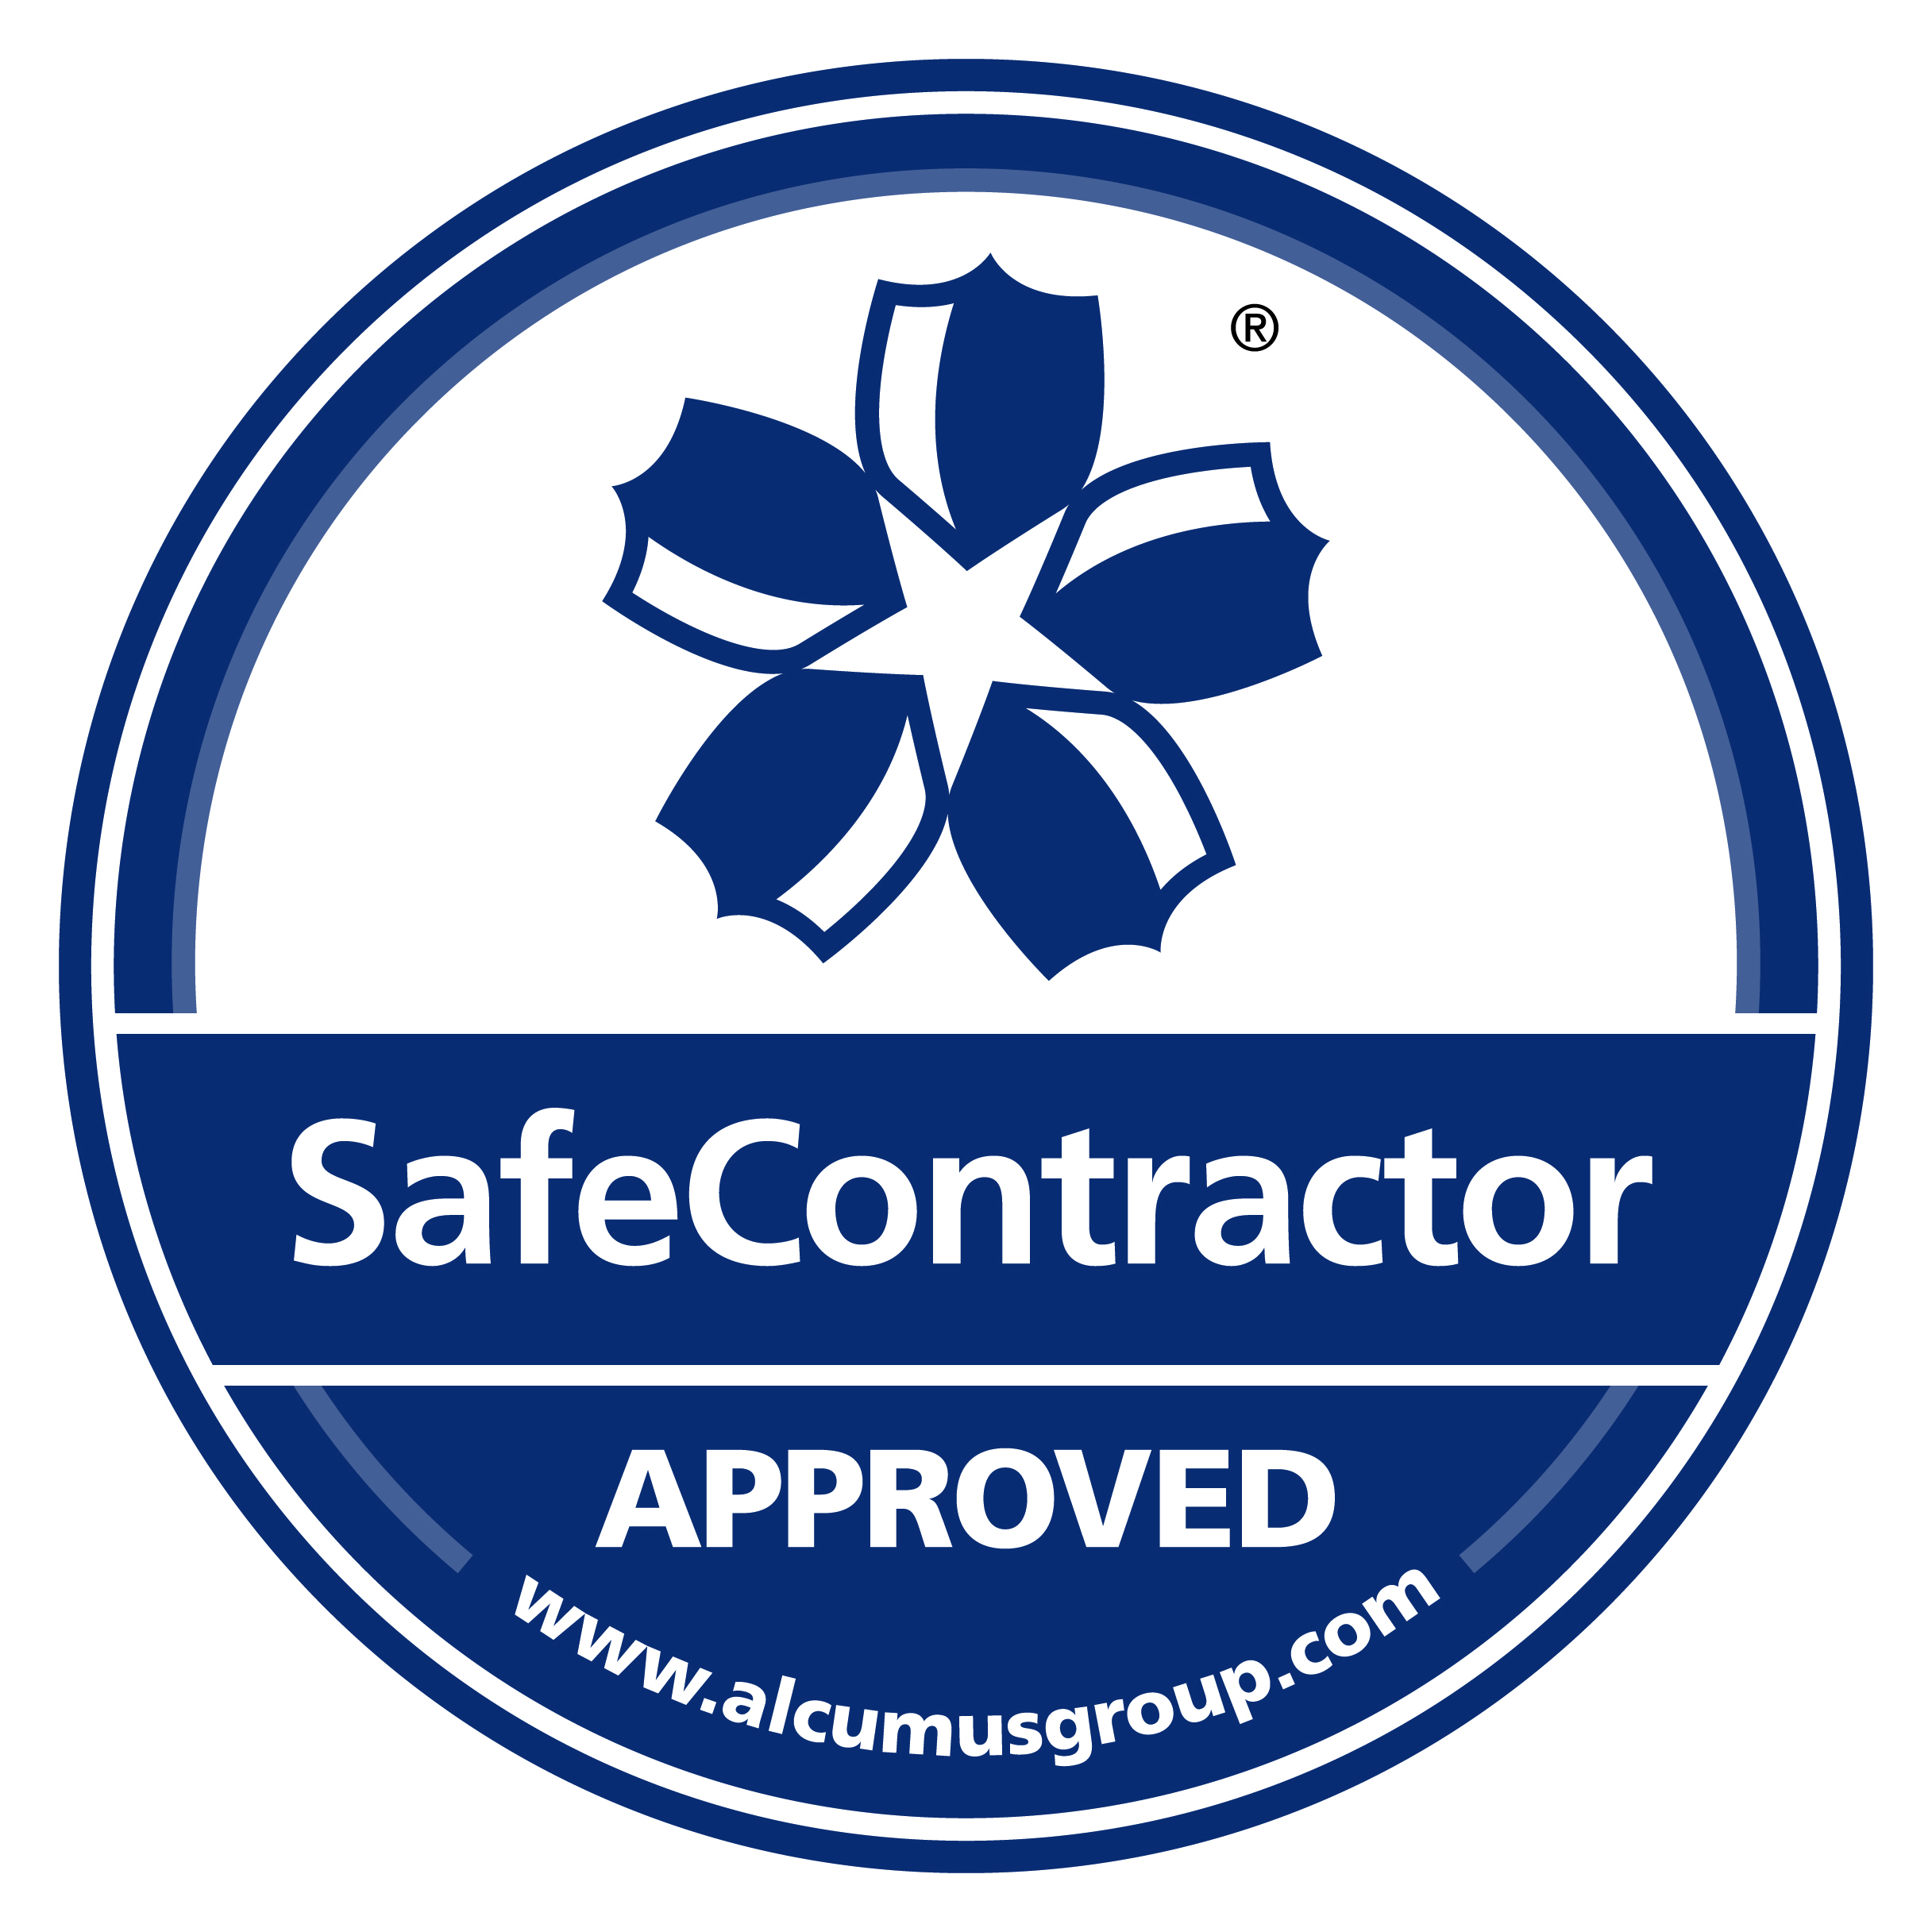 Accredited by Safe Contractor